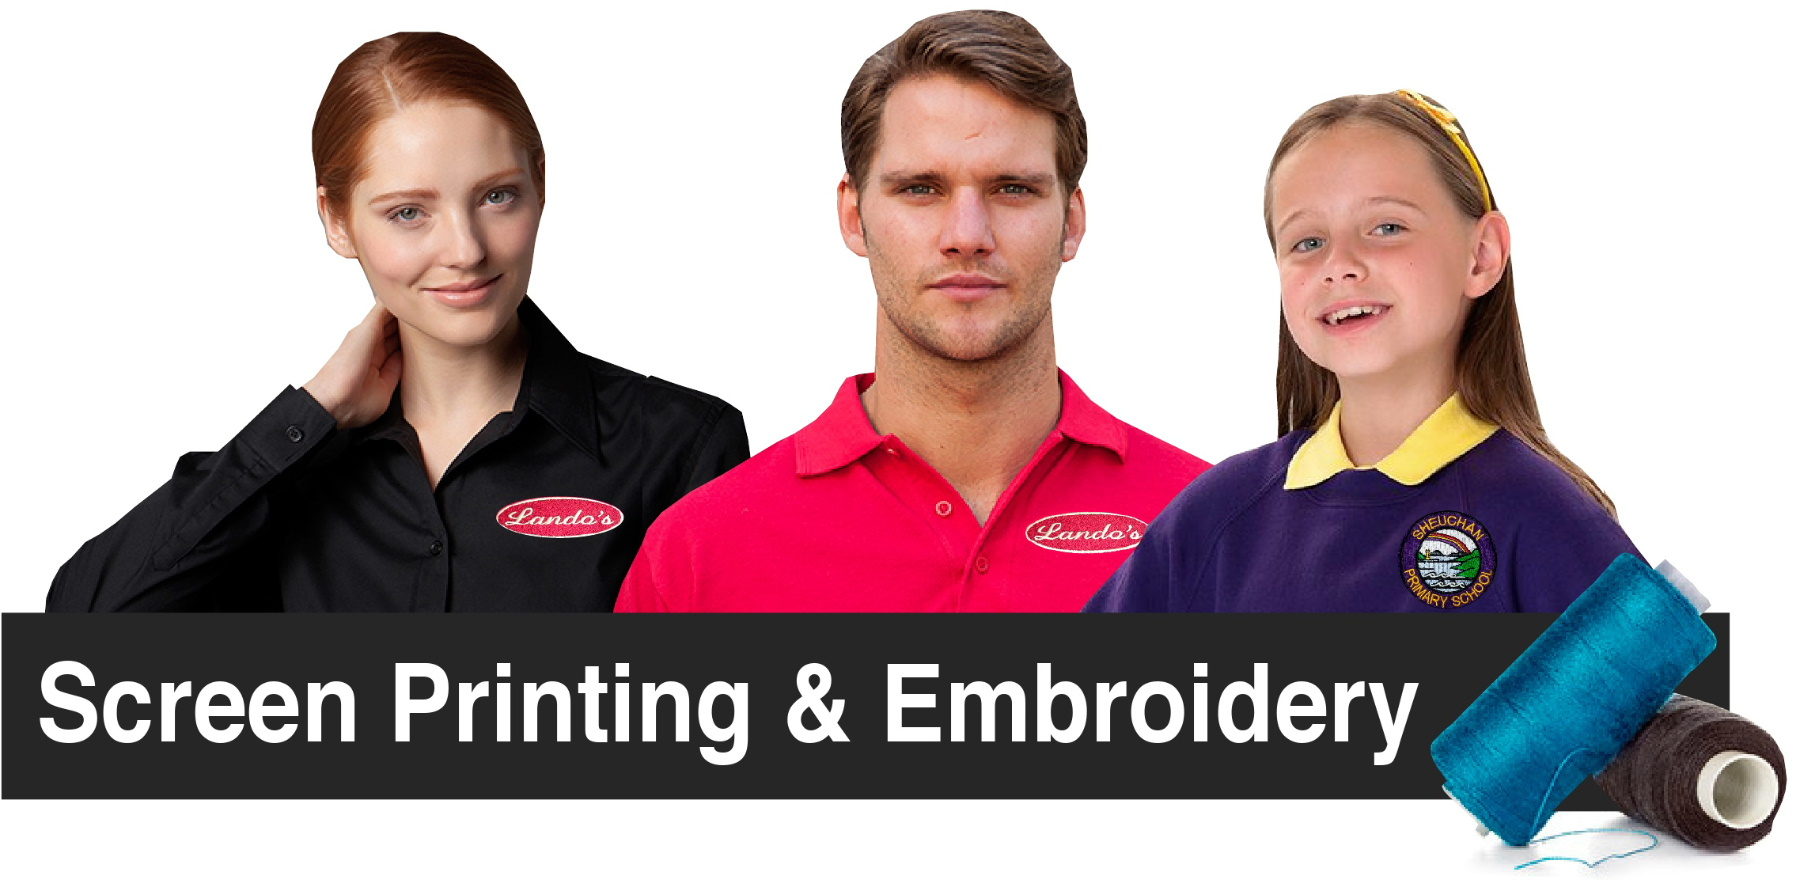 DG Embroidery of Stranraer Dumfries and Galloway specialise in garment screen printing and badge embroidery UK-wide